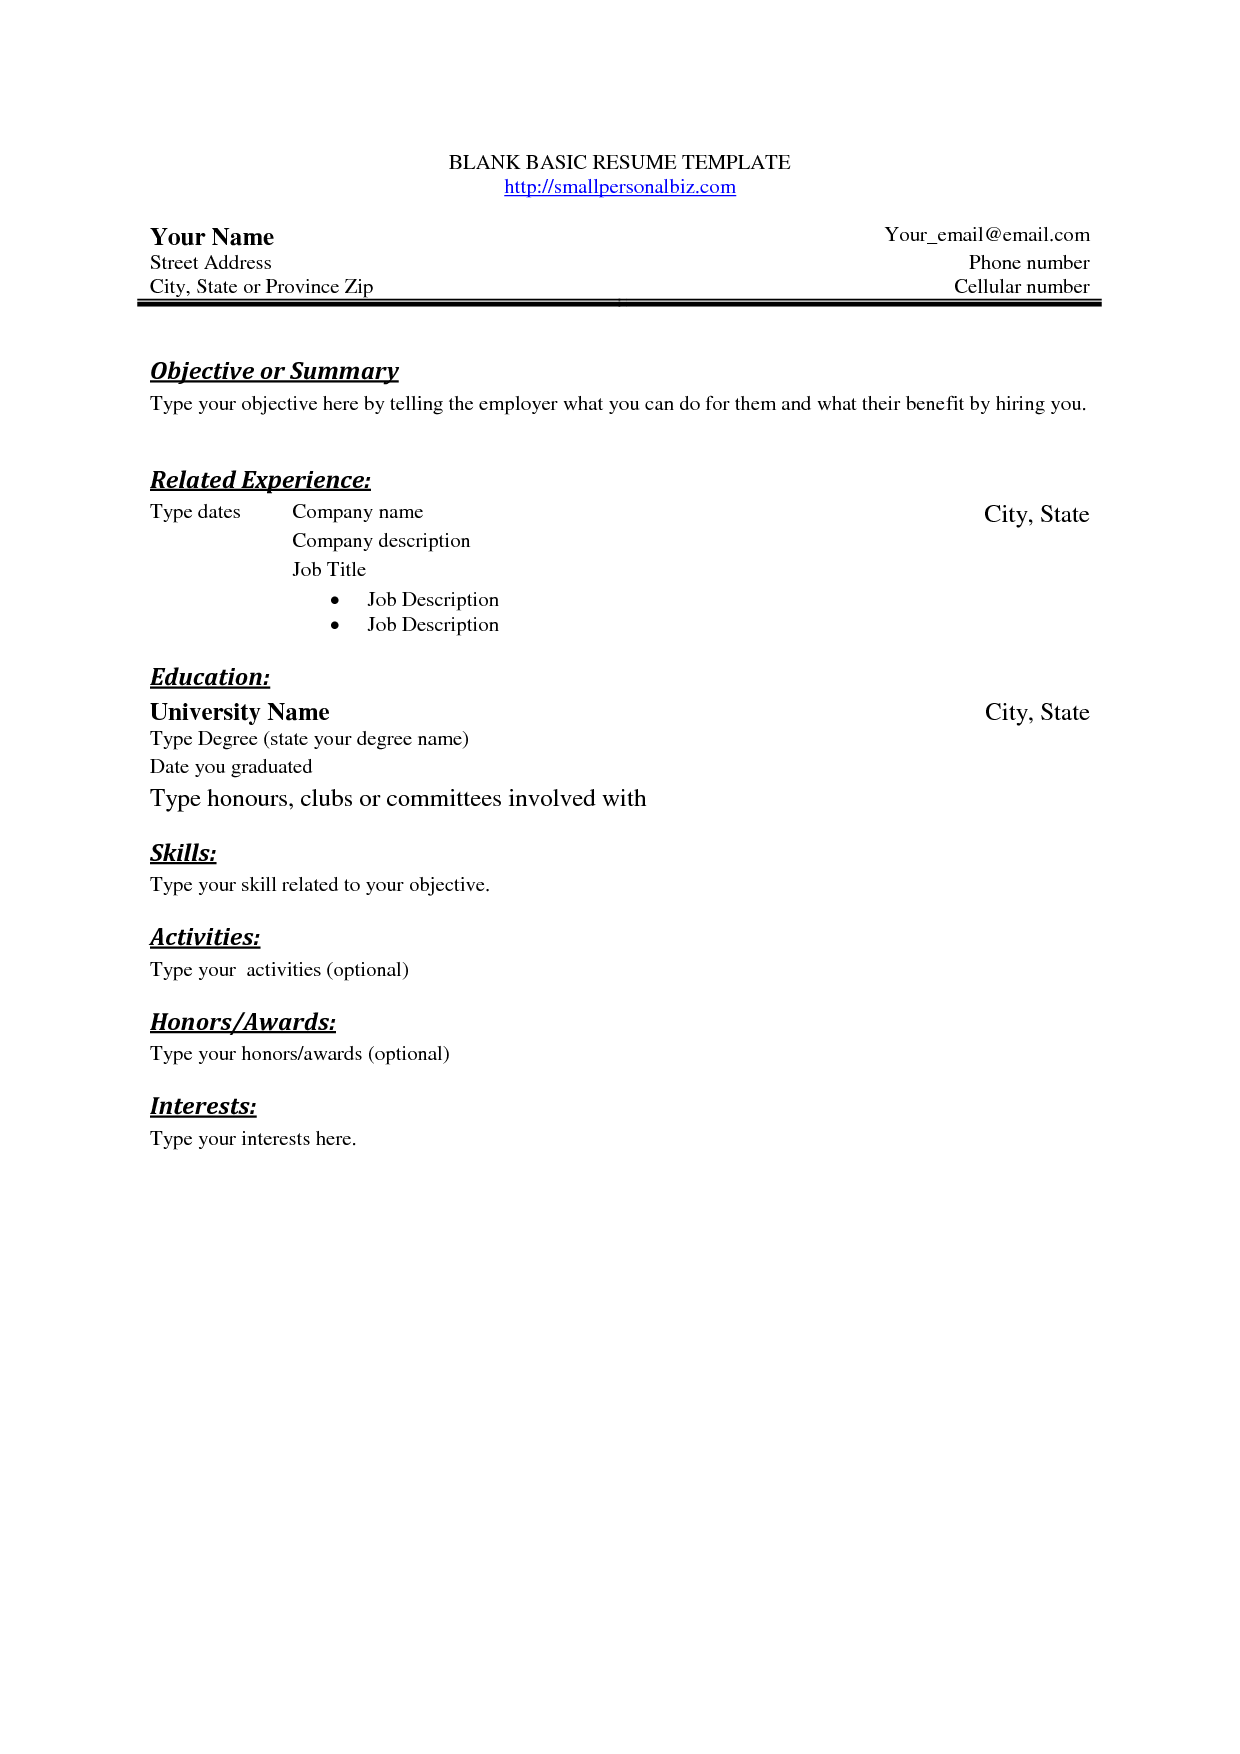 Resume Templates Tamu Awesome Stylist And Luxury Simple Resume Layout 10 Free Basic Blank Resume